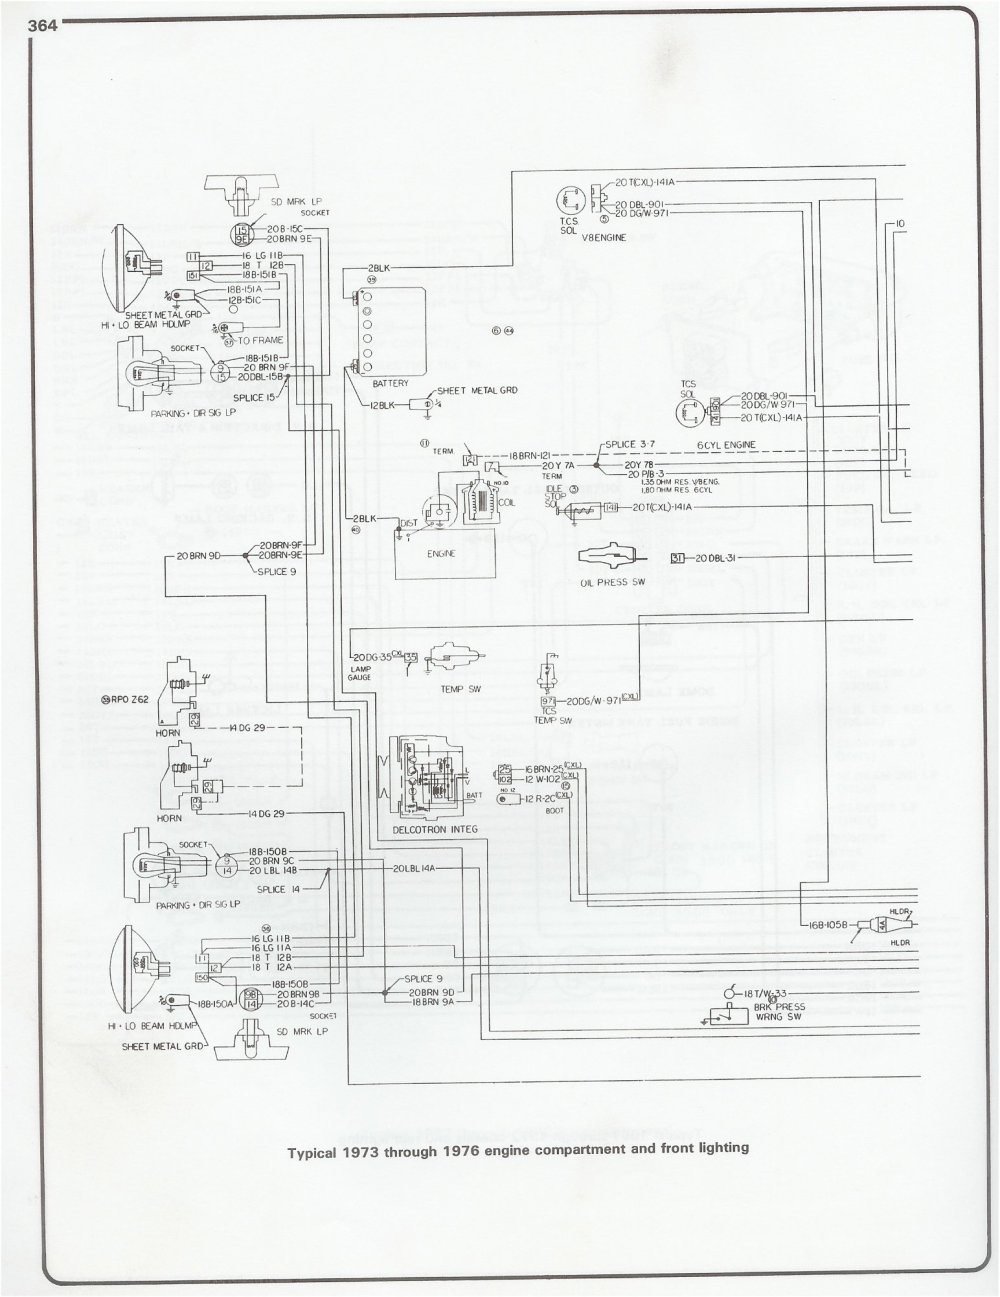 medium resolution of complete 73 87 wiring diagrams 1980 chevy c10 wiring diagram 1981 chevy c10 radio wiring diagram